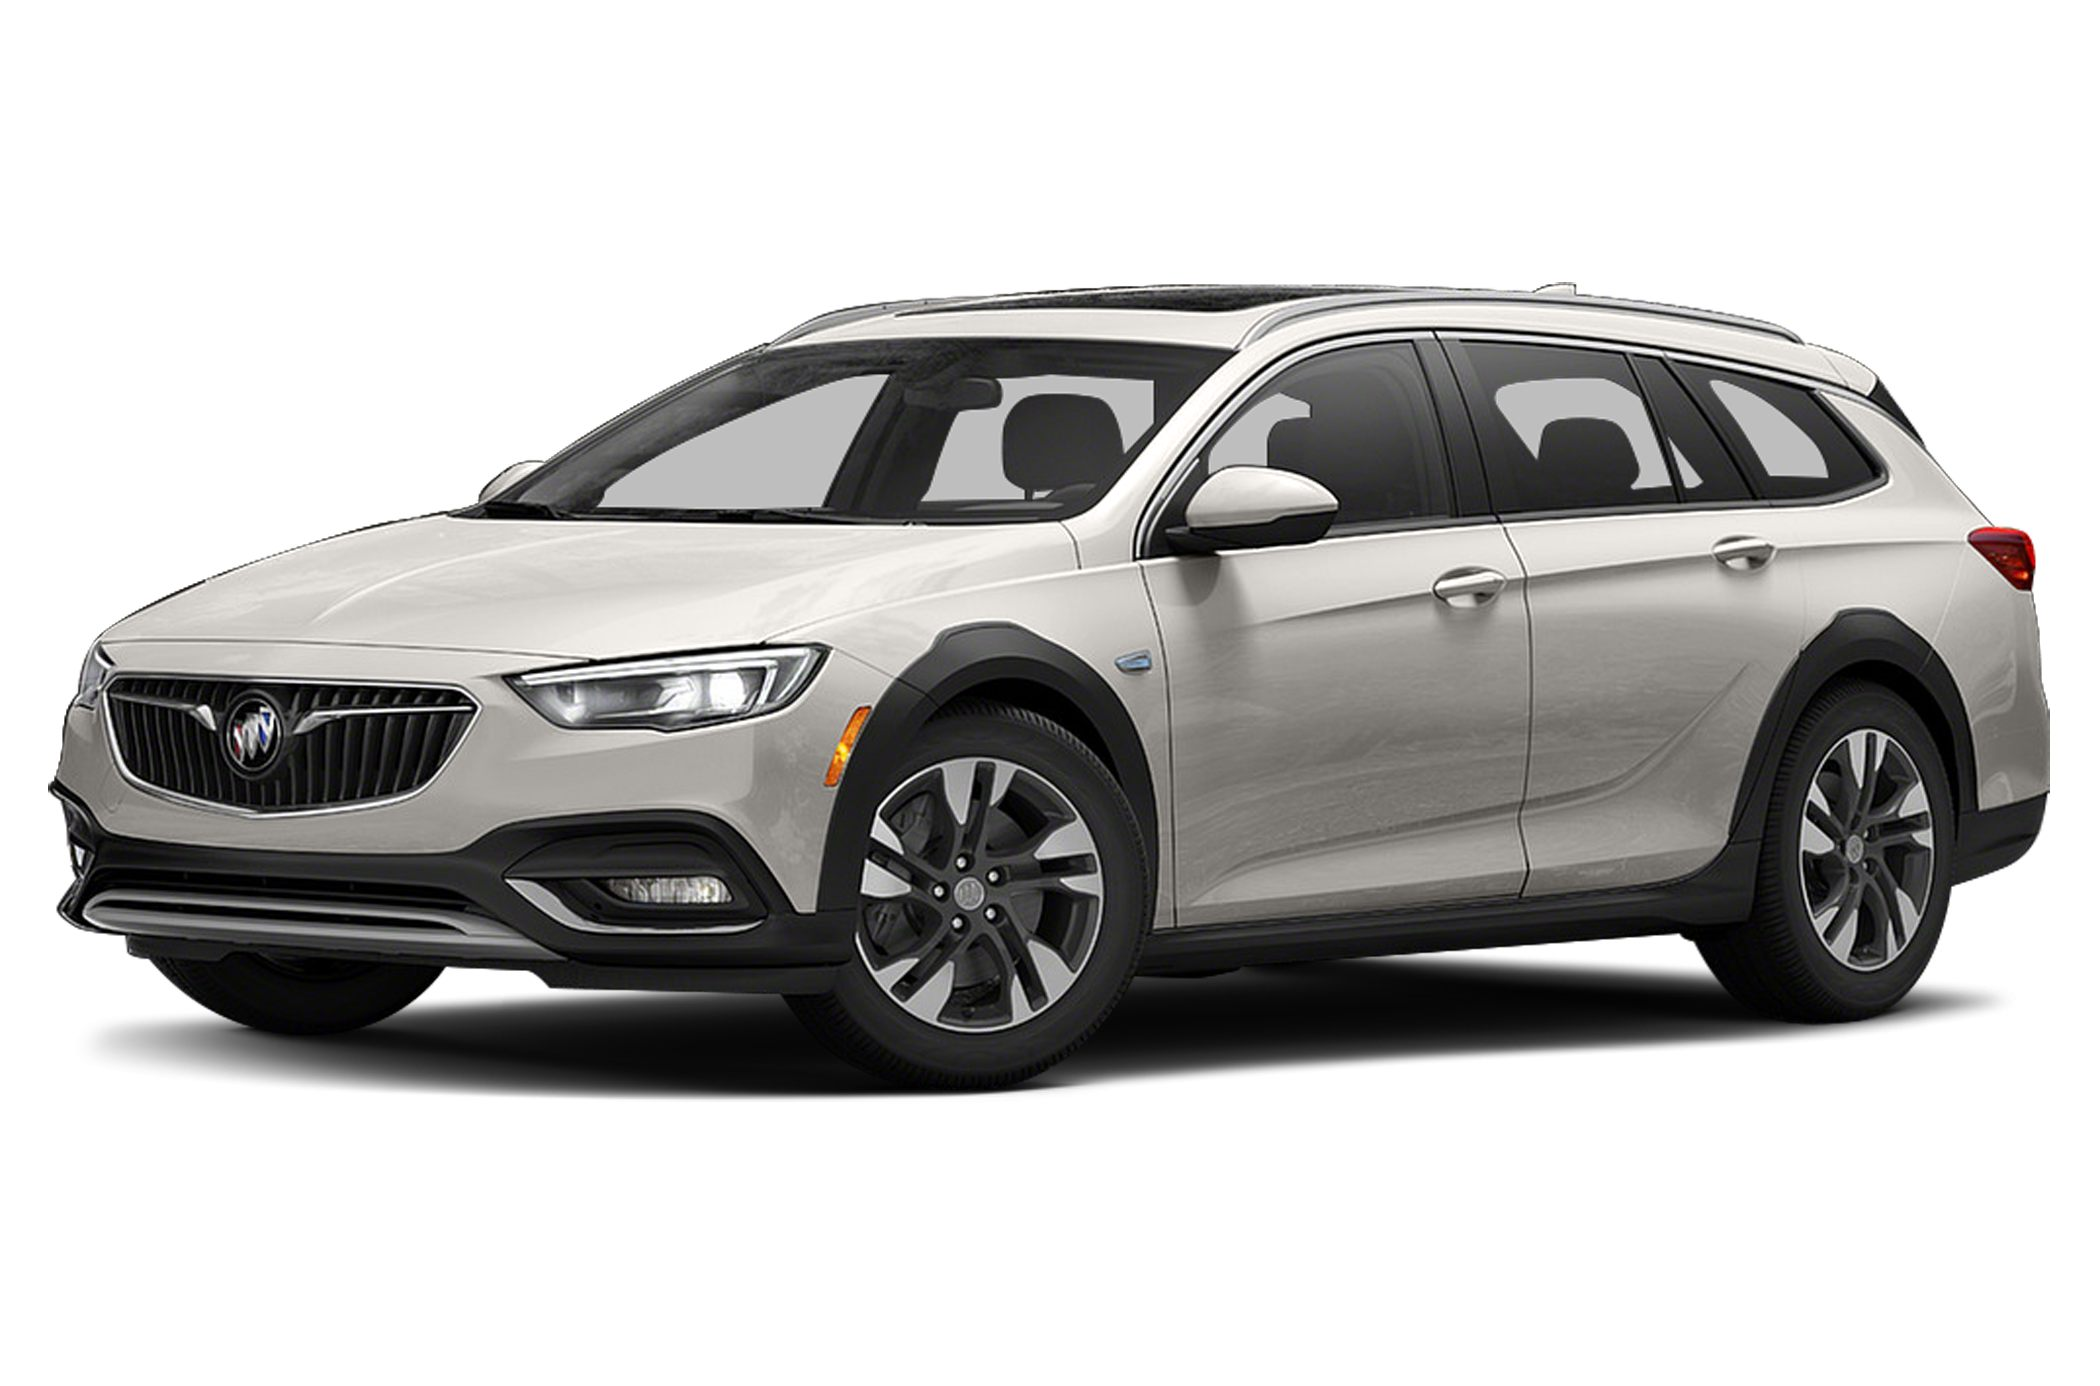 2018 Buick Regal TourX Deals, Prices, Incentives & Leases ...